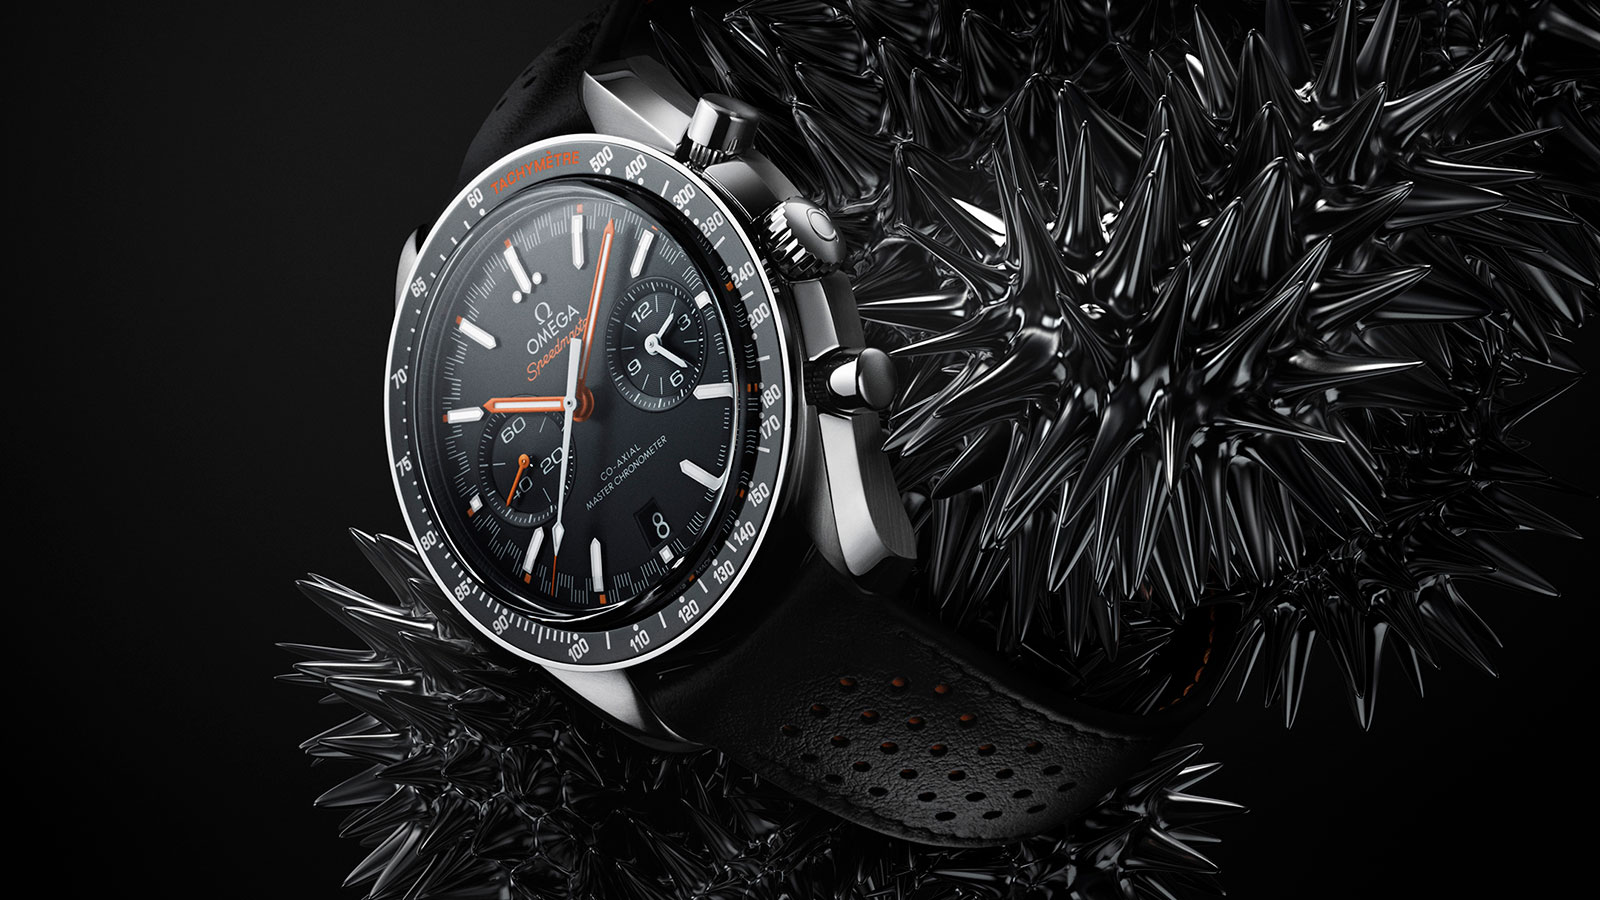 Speedmaster Racing Racing Omega Co‑Axial Master Chronometer Chronograph 44.25 mm Watch - 329.32.44.51.01.001